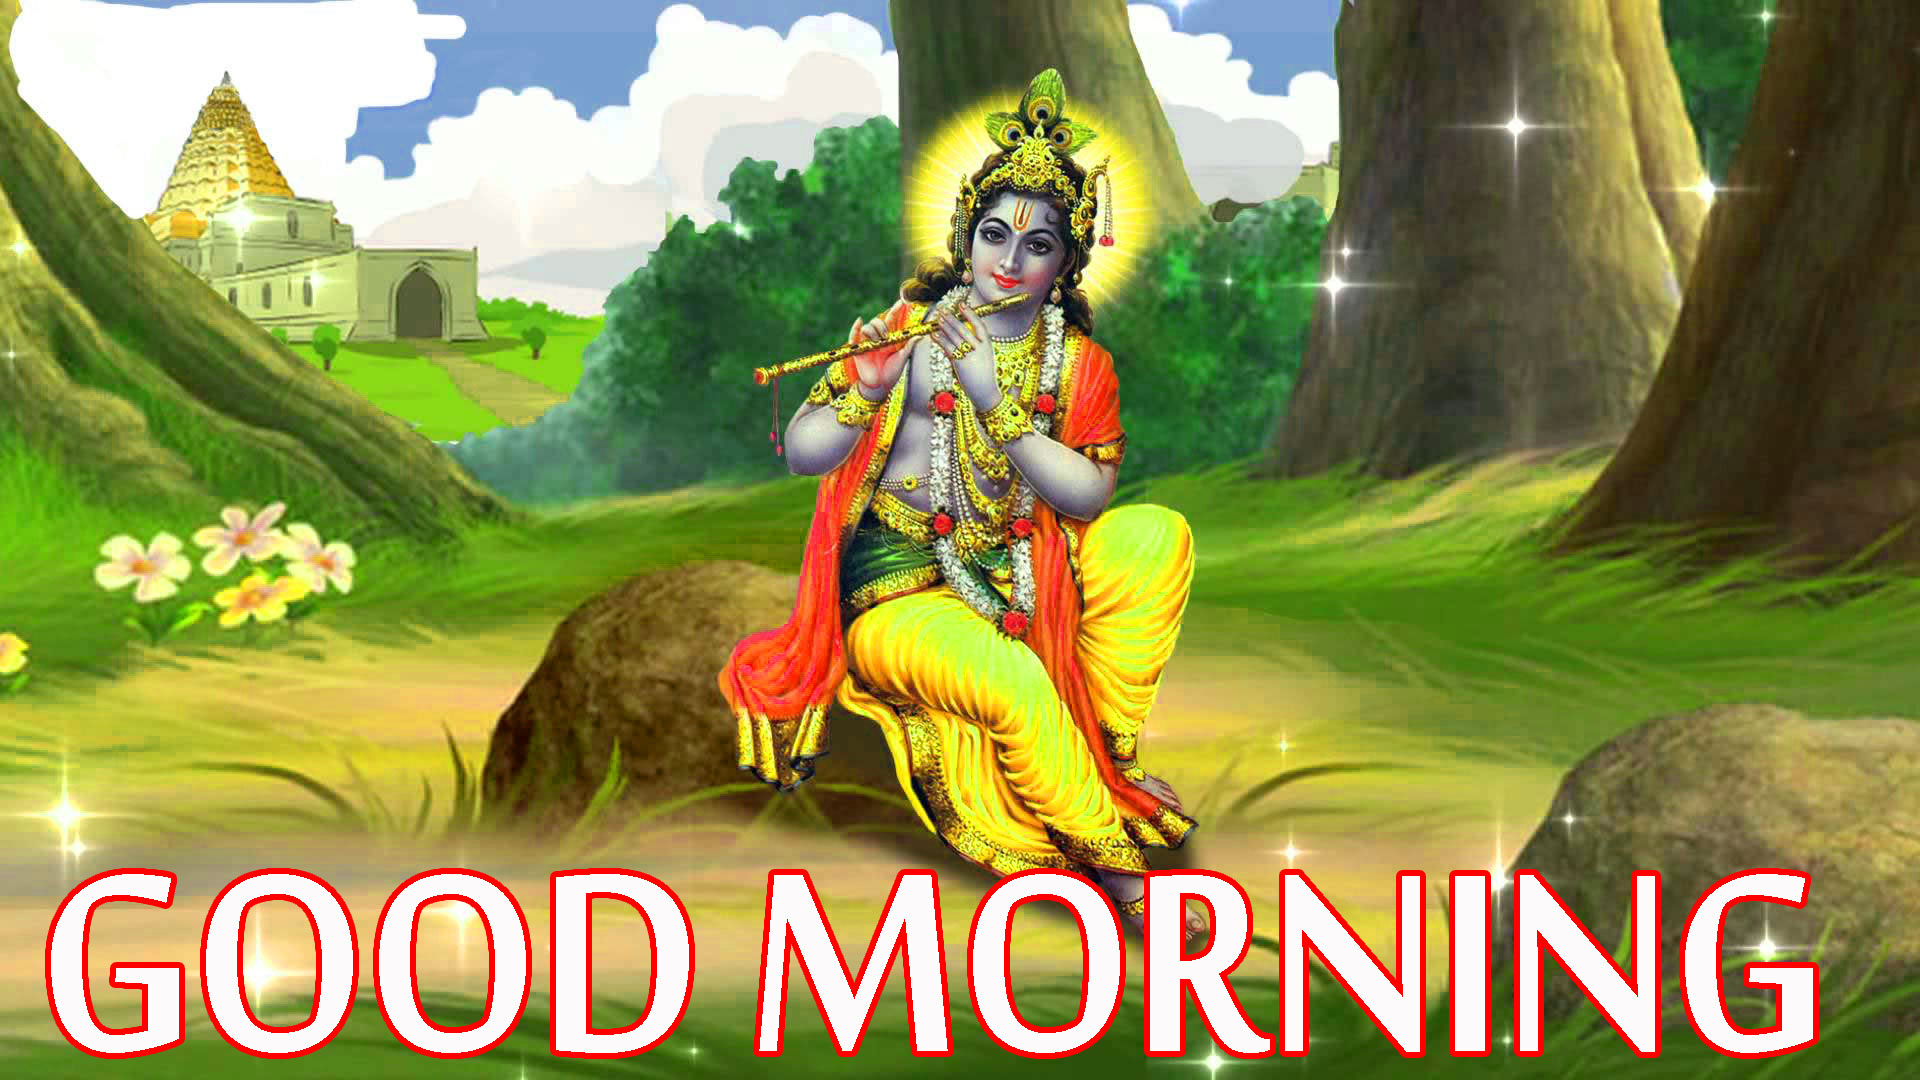 Radha Krishna Good Morning Images  Wallpaper Pictures Free Download for Whatsapp